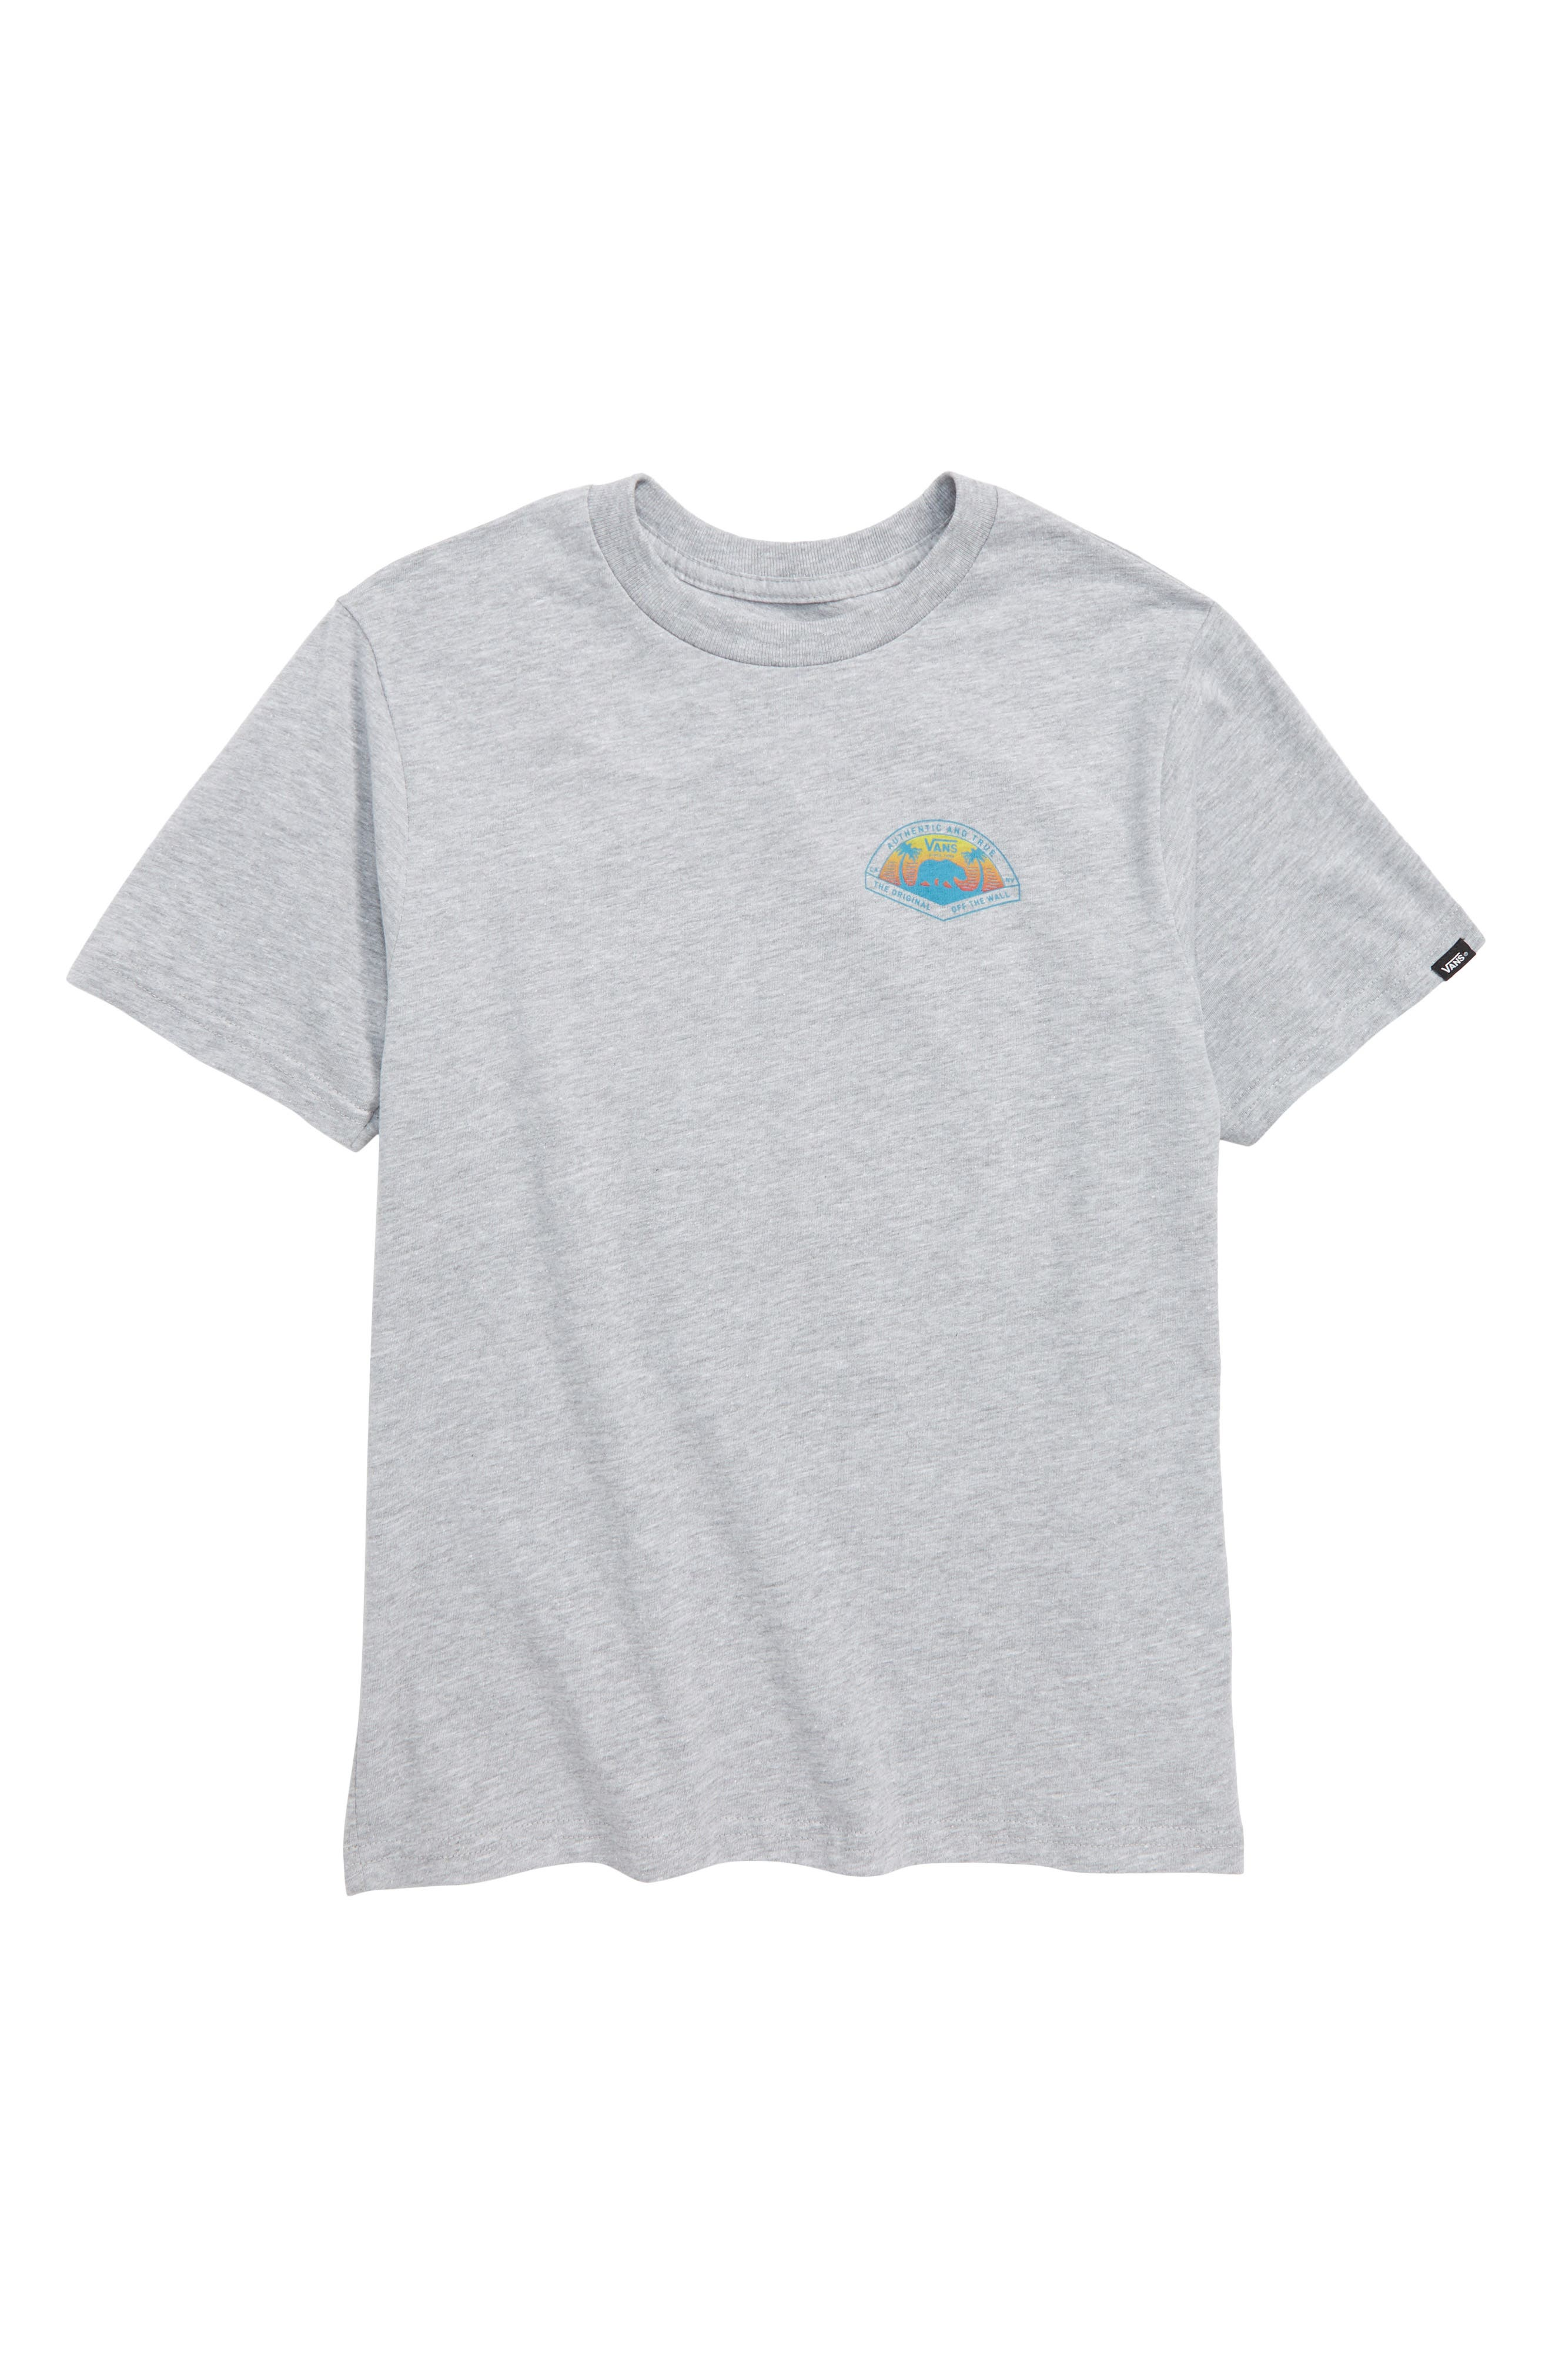 Grizzly Beach Graphic T-Shirt,                             Main thumbnail 1, color,                             021